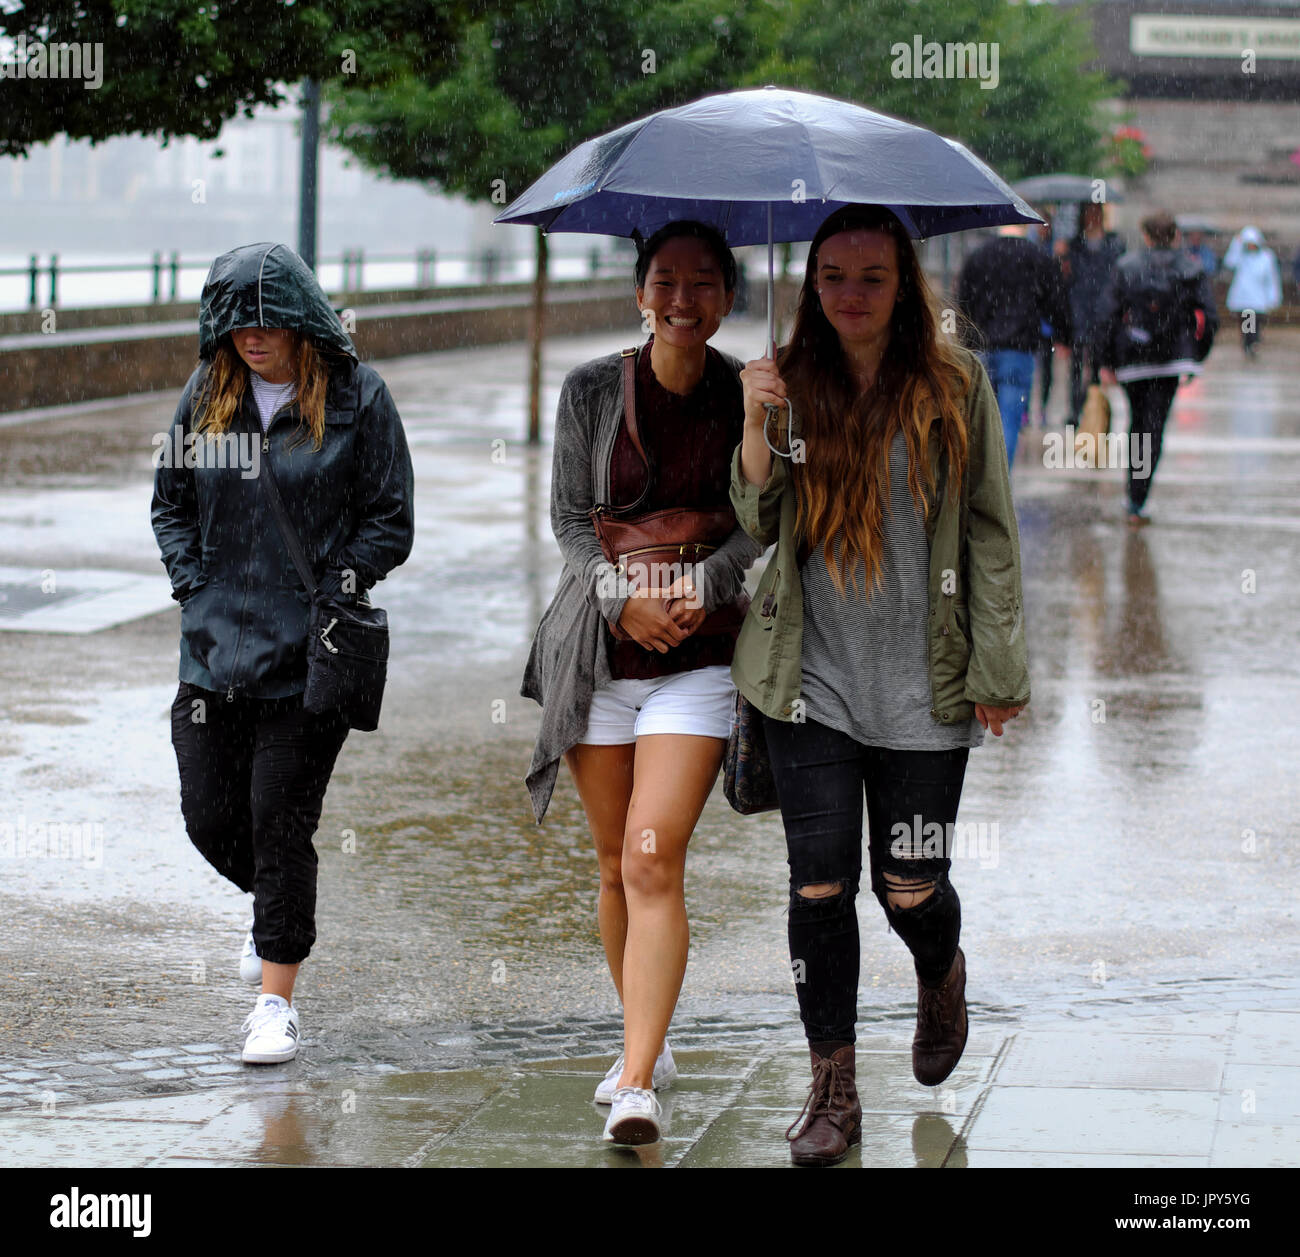 two young women sharing an umbrella whilst walking during heavy rain in London, England Stock Photo